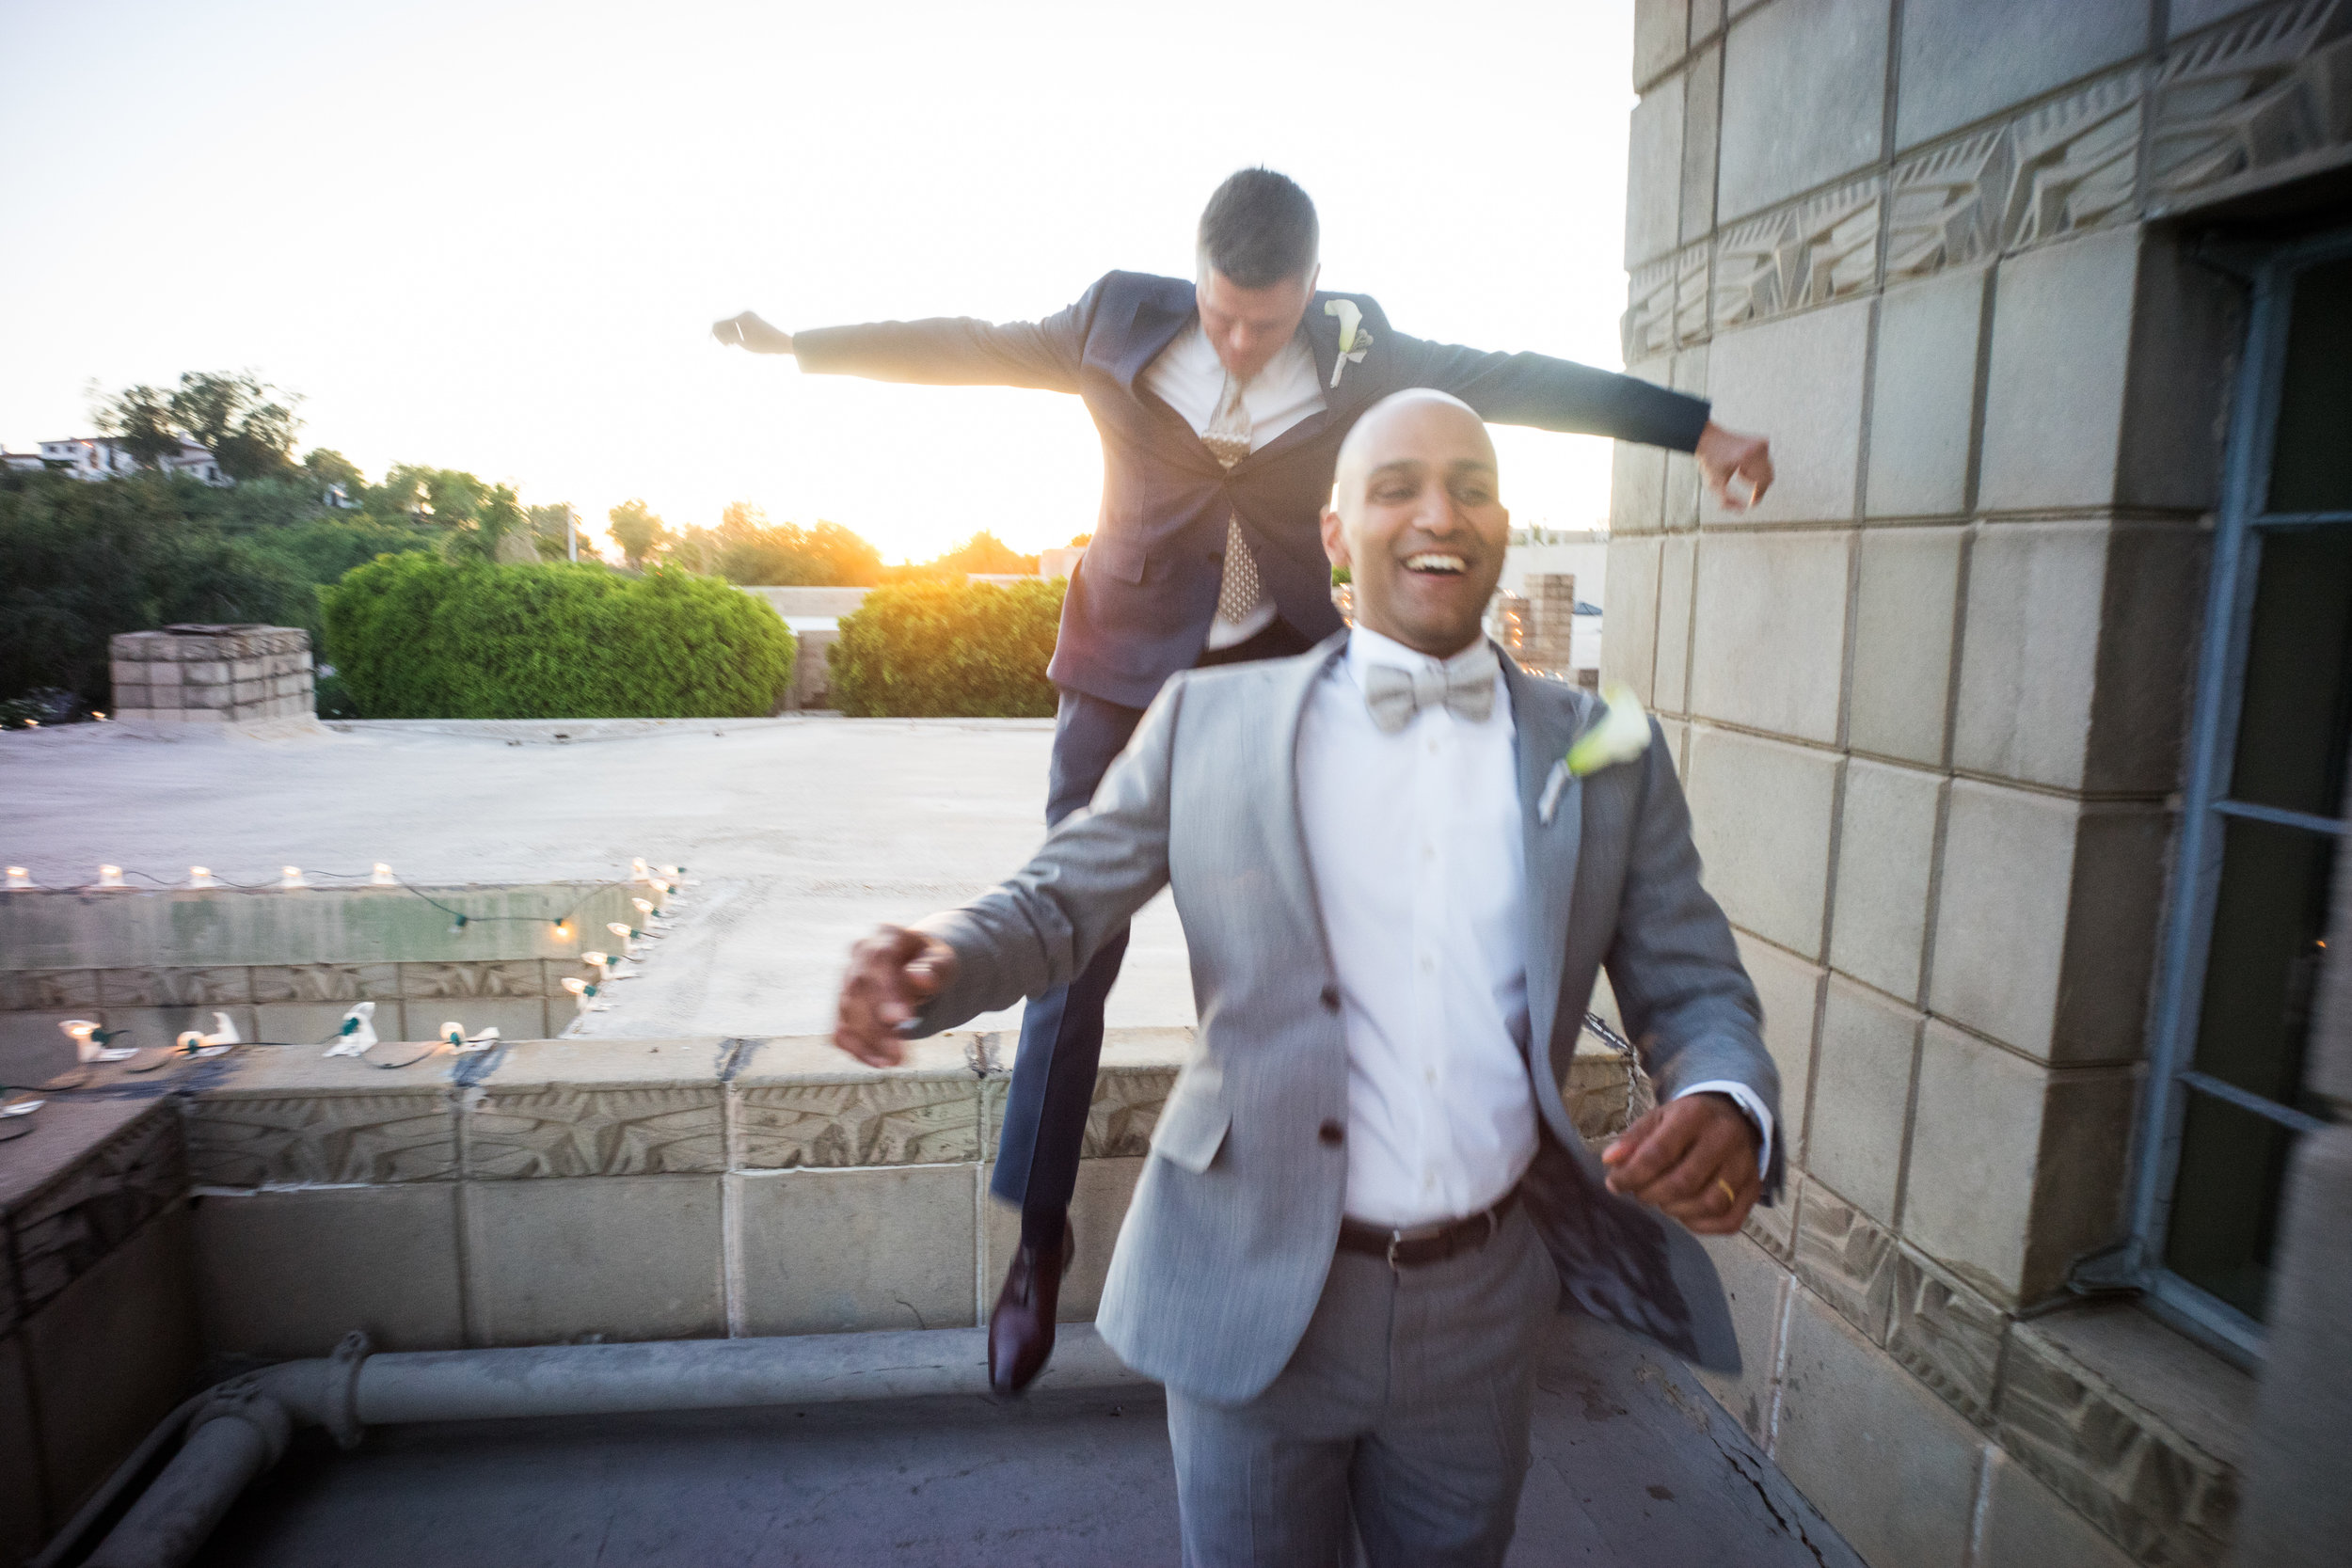 12a excited groom jumping groom laughter laughing groom after ceremony photo two grooms arizona biltmore roof photos just married sunset wedding photos Life Design Events photos by Keith and Melissa Photography.jpg